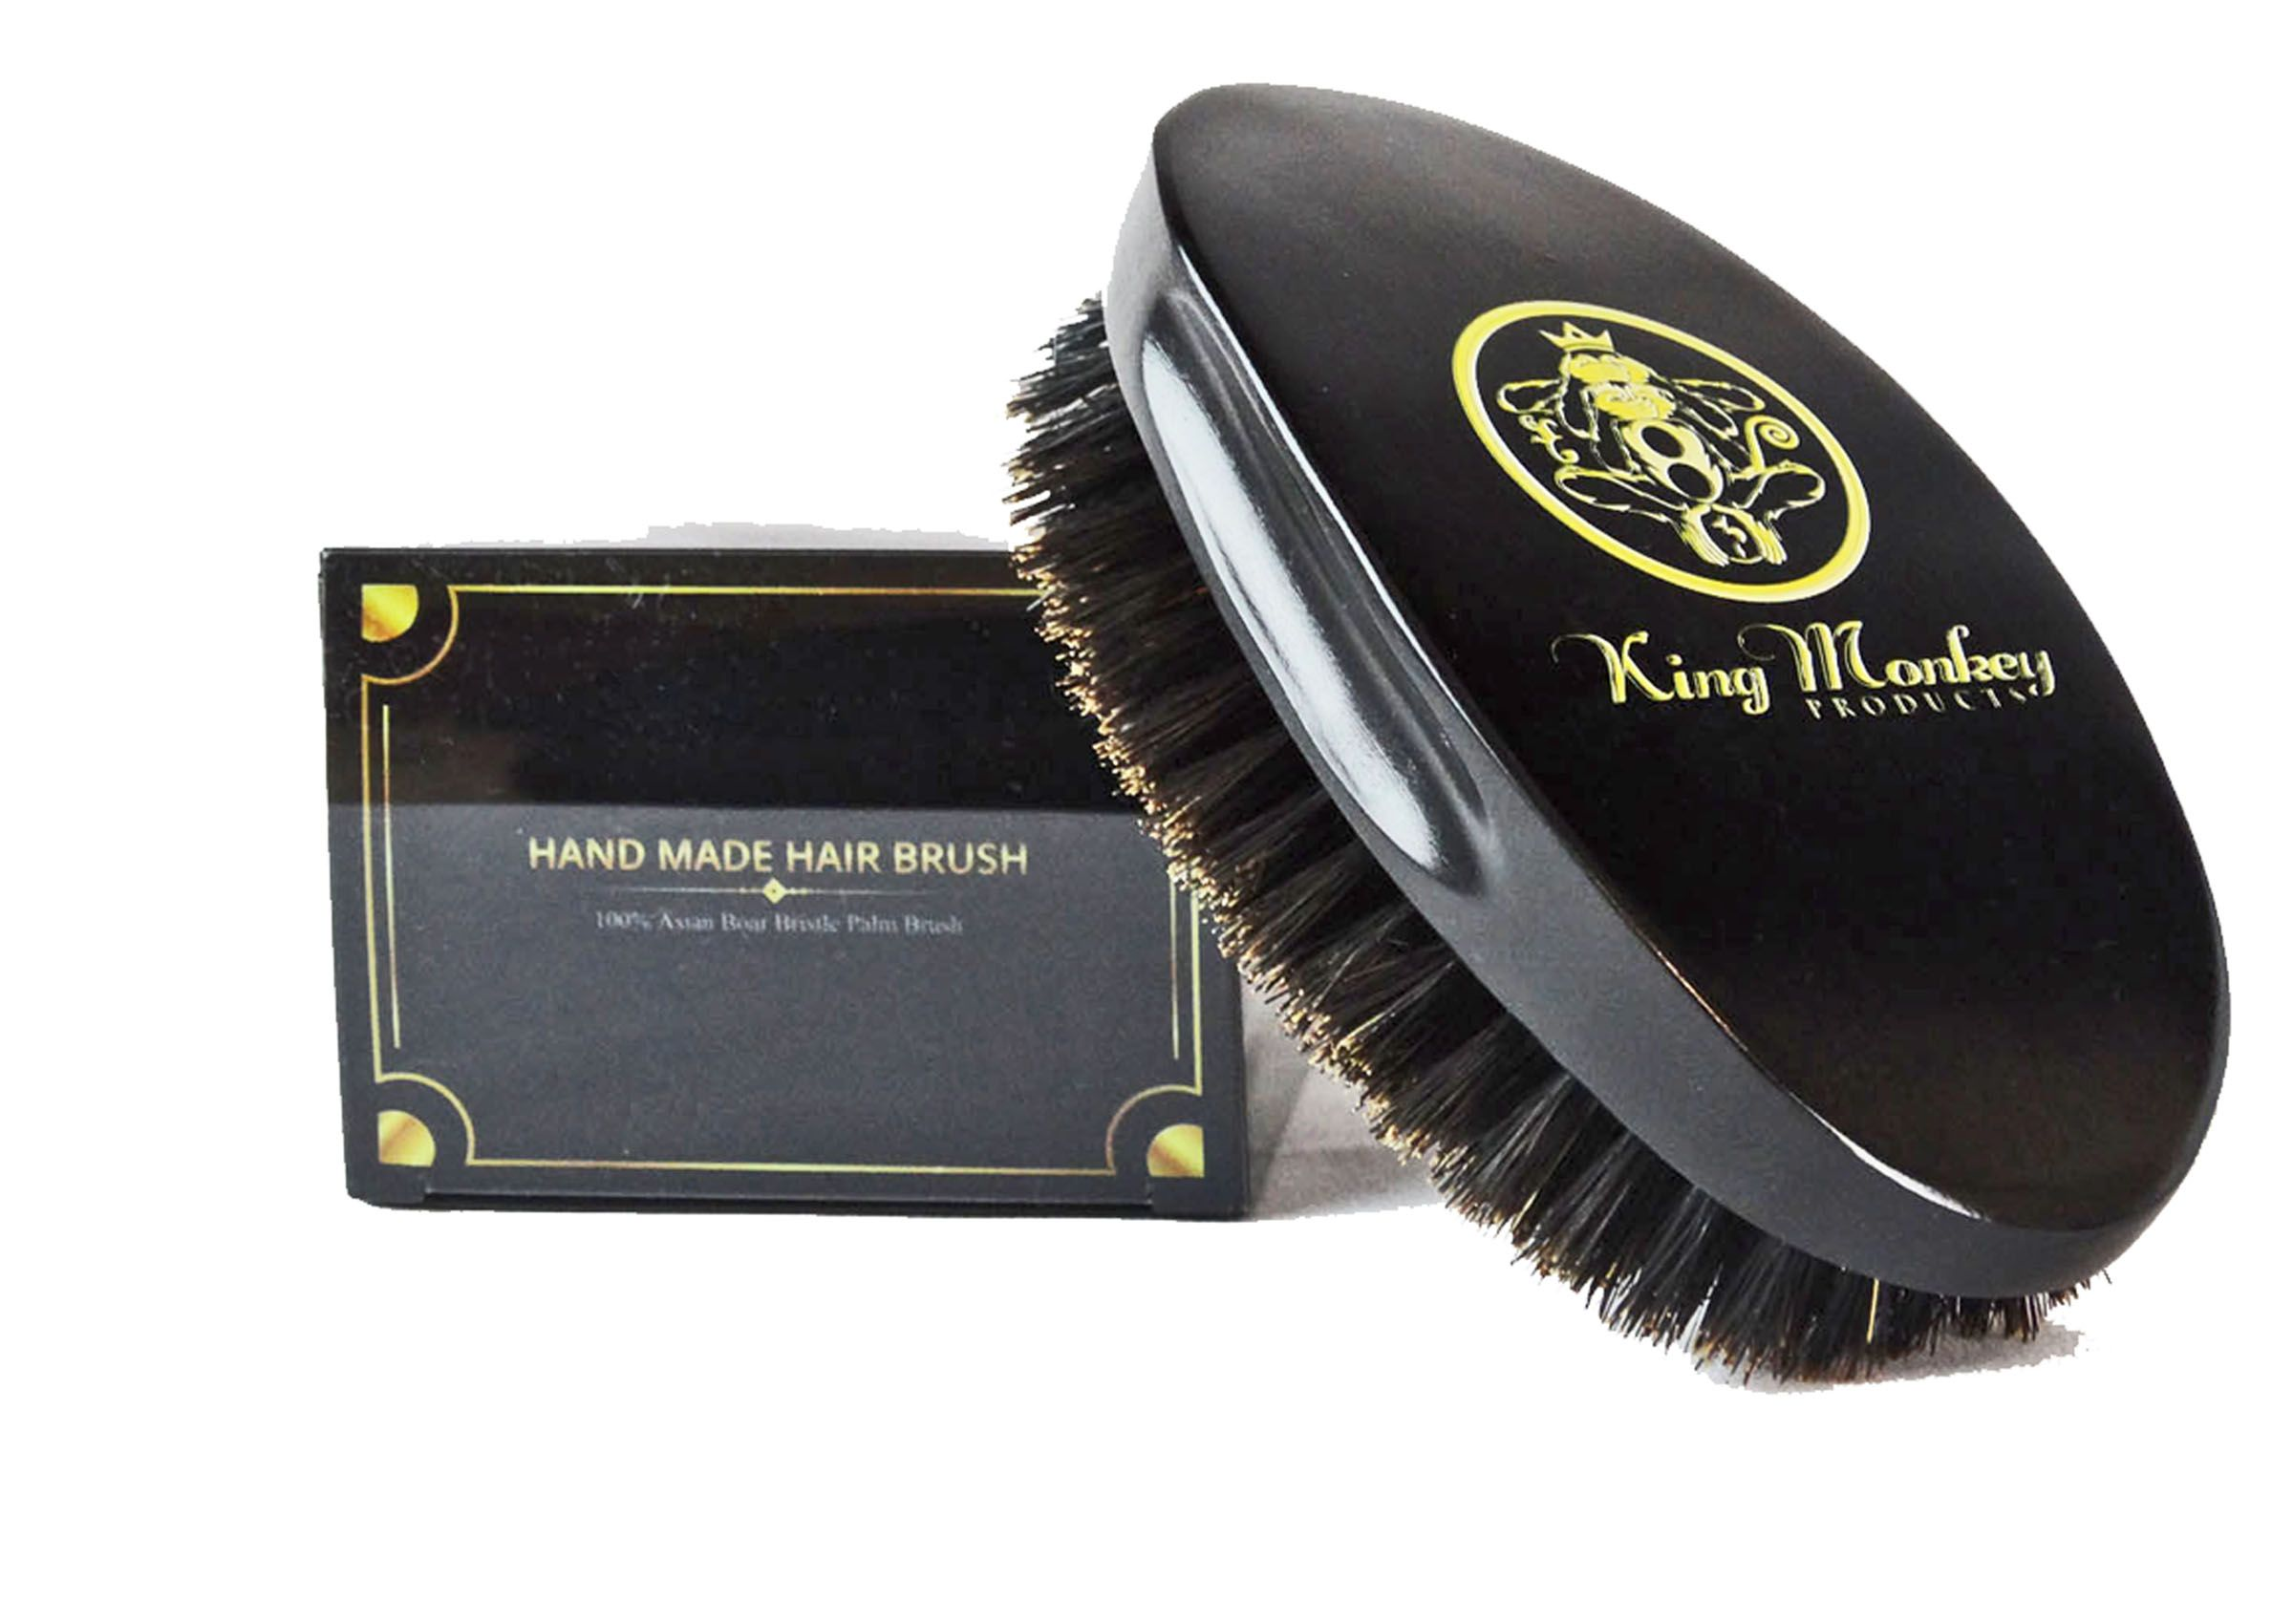 KING MONKEY PRODUCTS 1776 Natural Boar Bristle Palm Hair